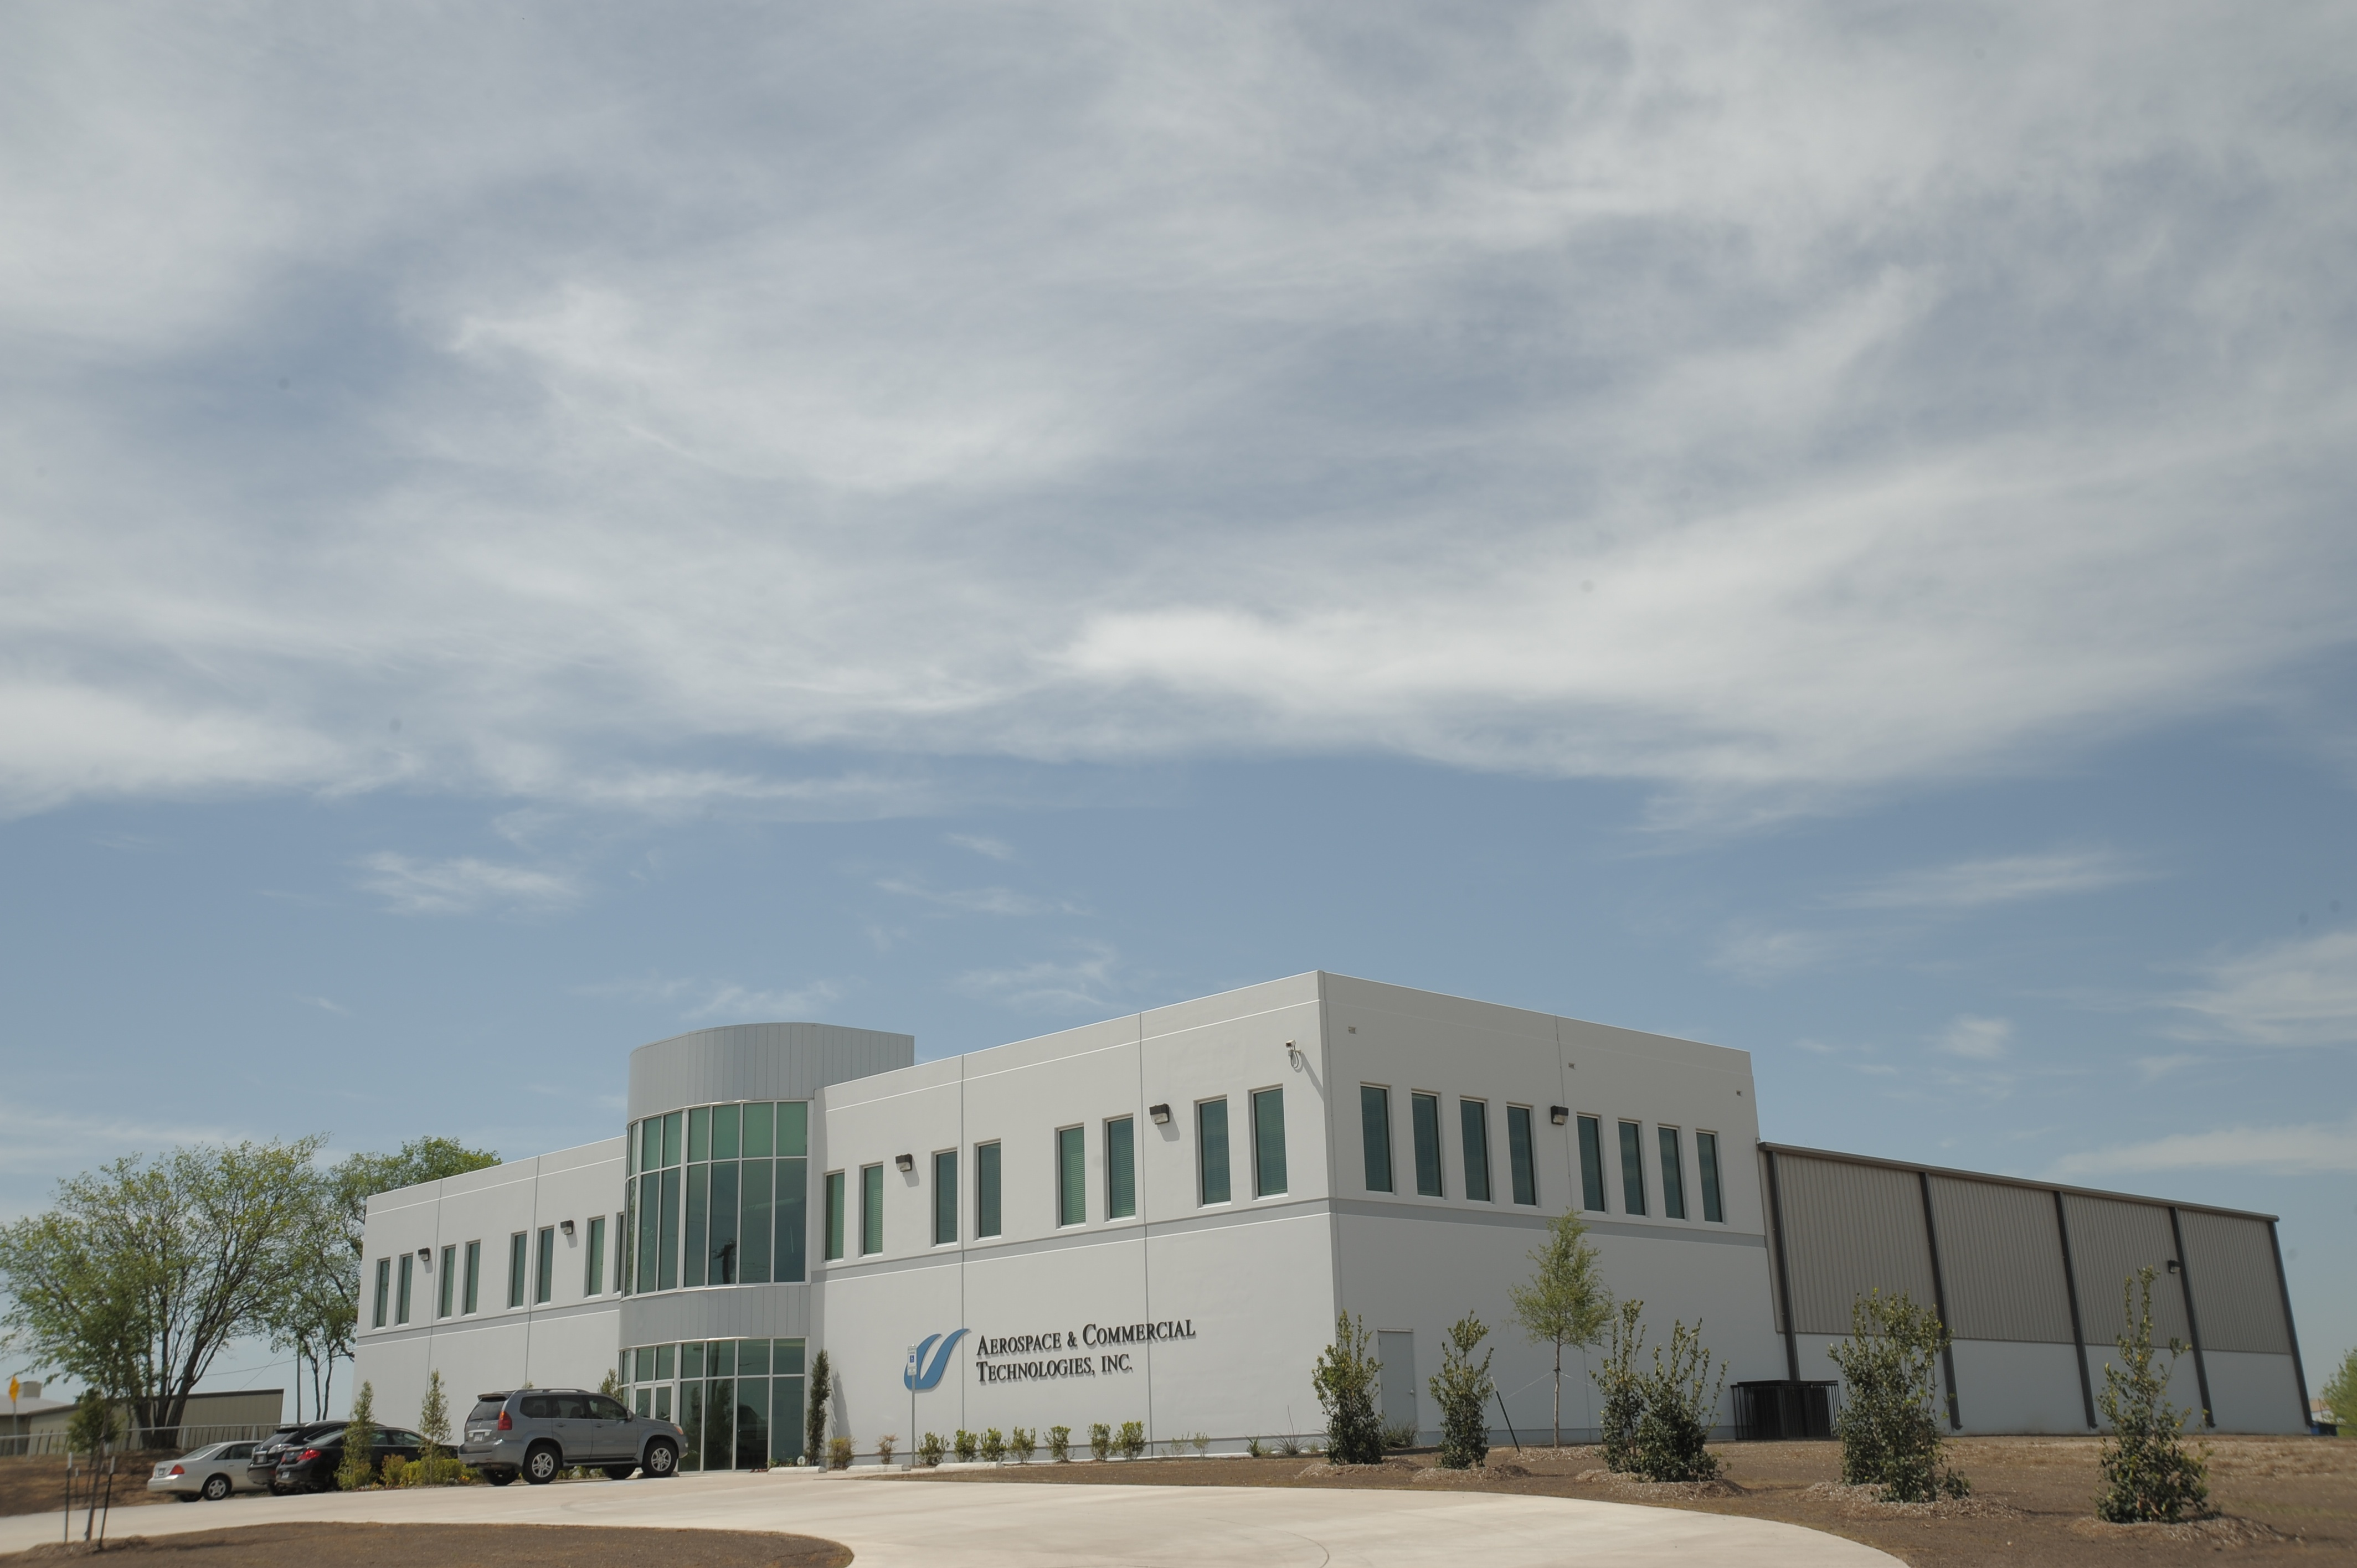 Aerospace Commercial Technology Industrial Construction Exterior View